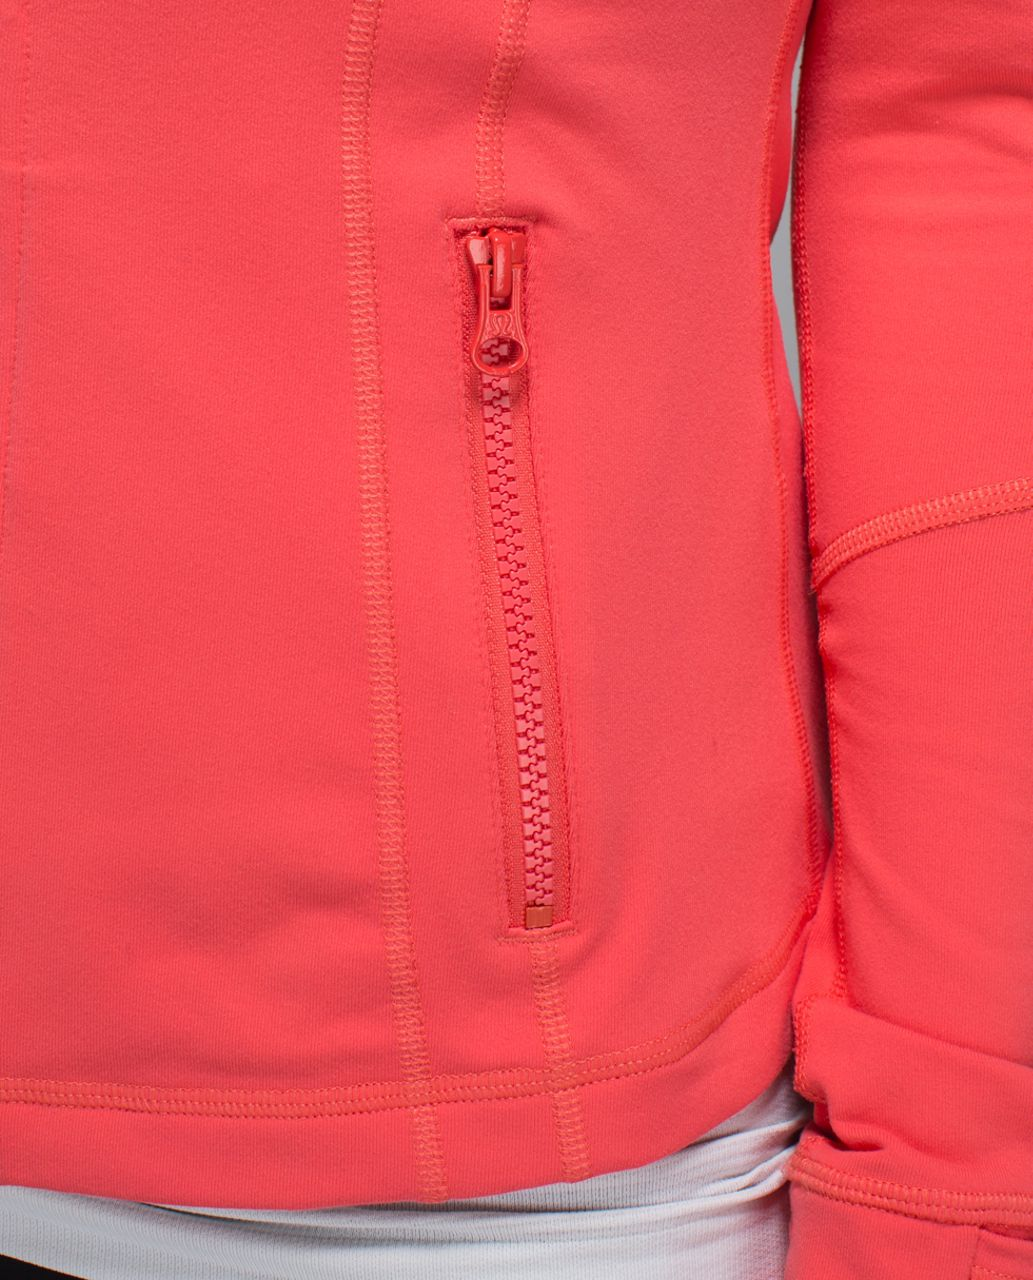 Lululemon Define Jacket - Atomic Red